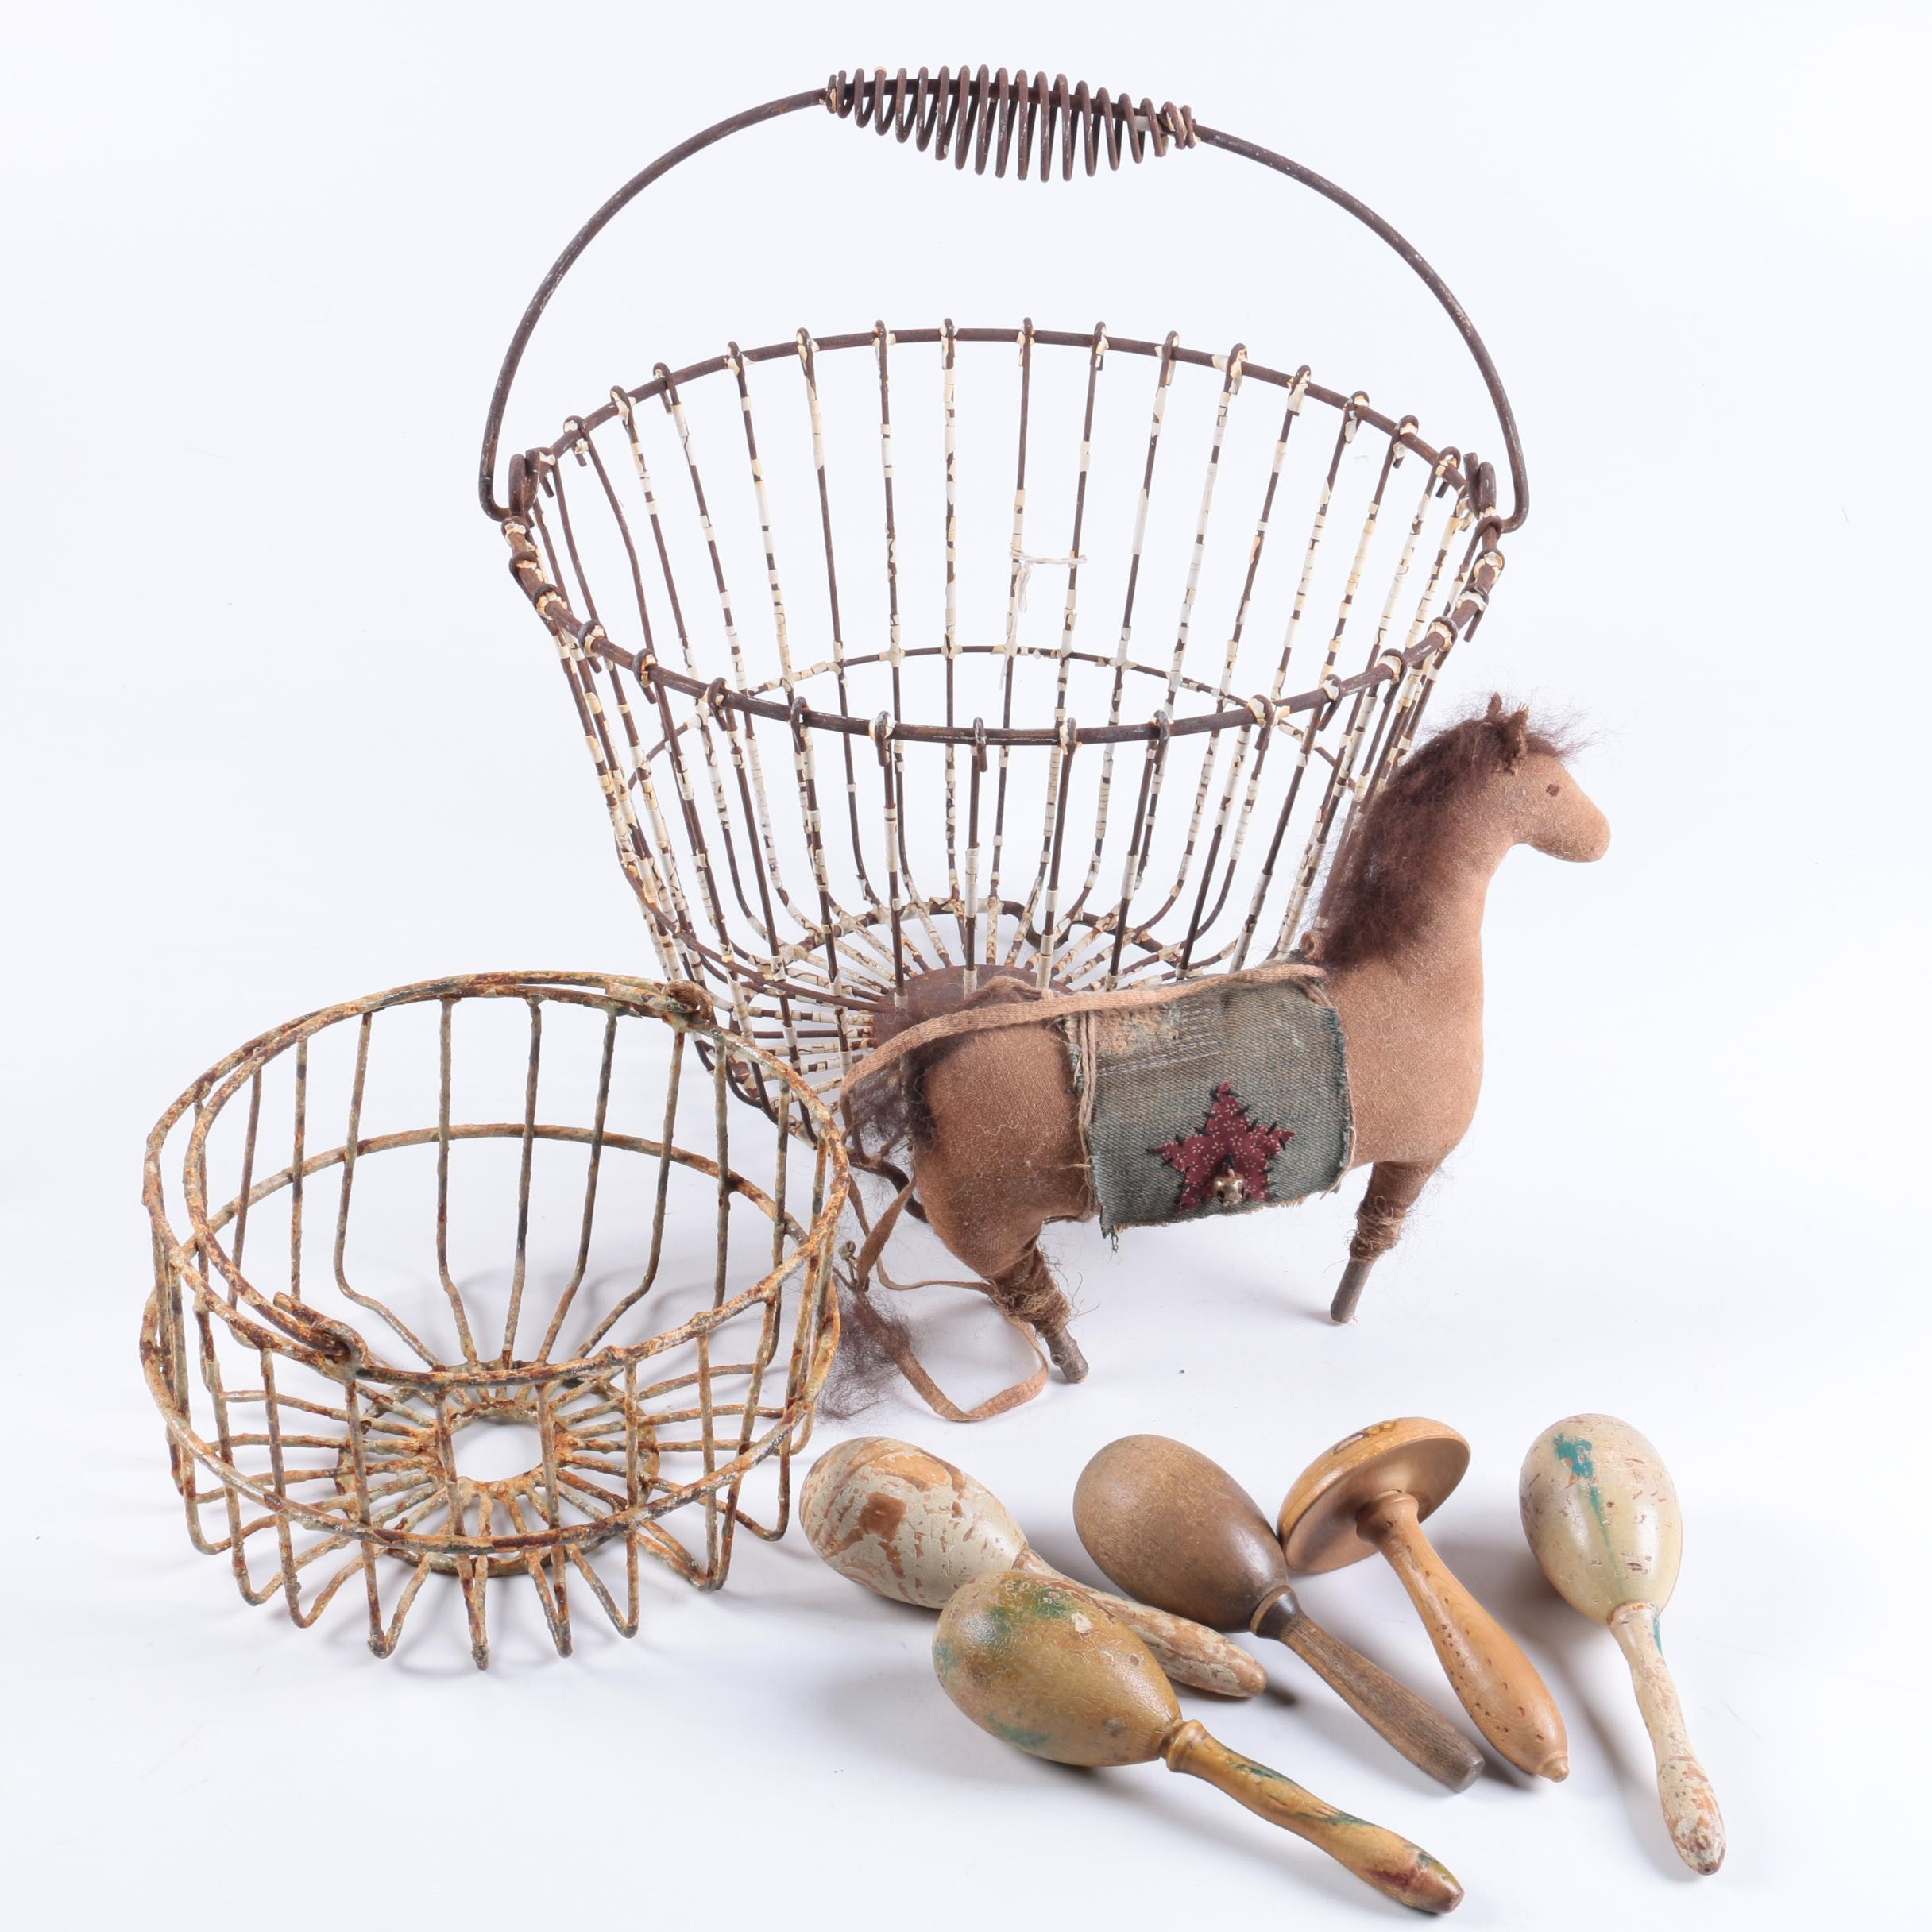 Vintage Handmade Toy Horse, Darning Eggs and Wire Baskets